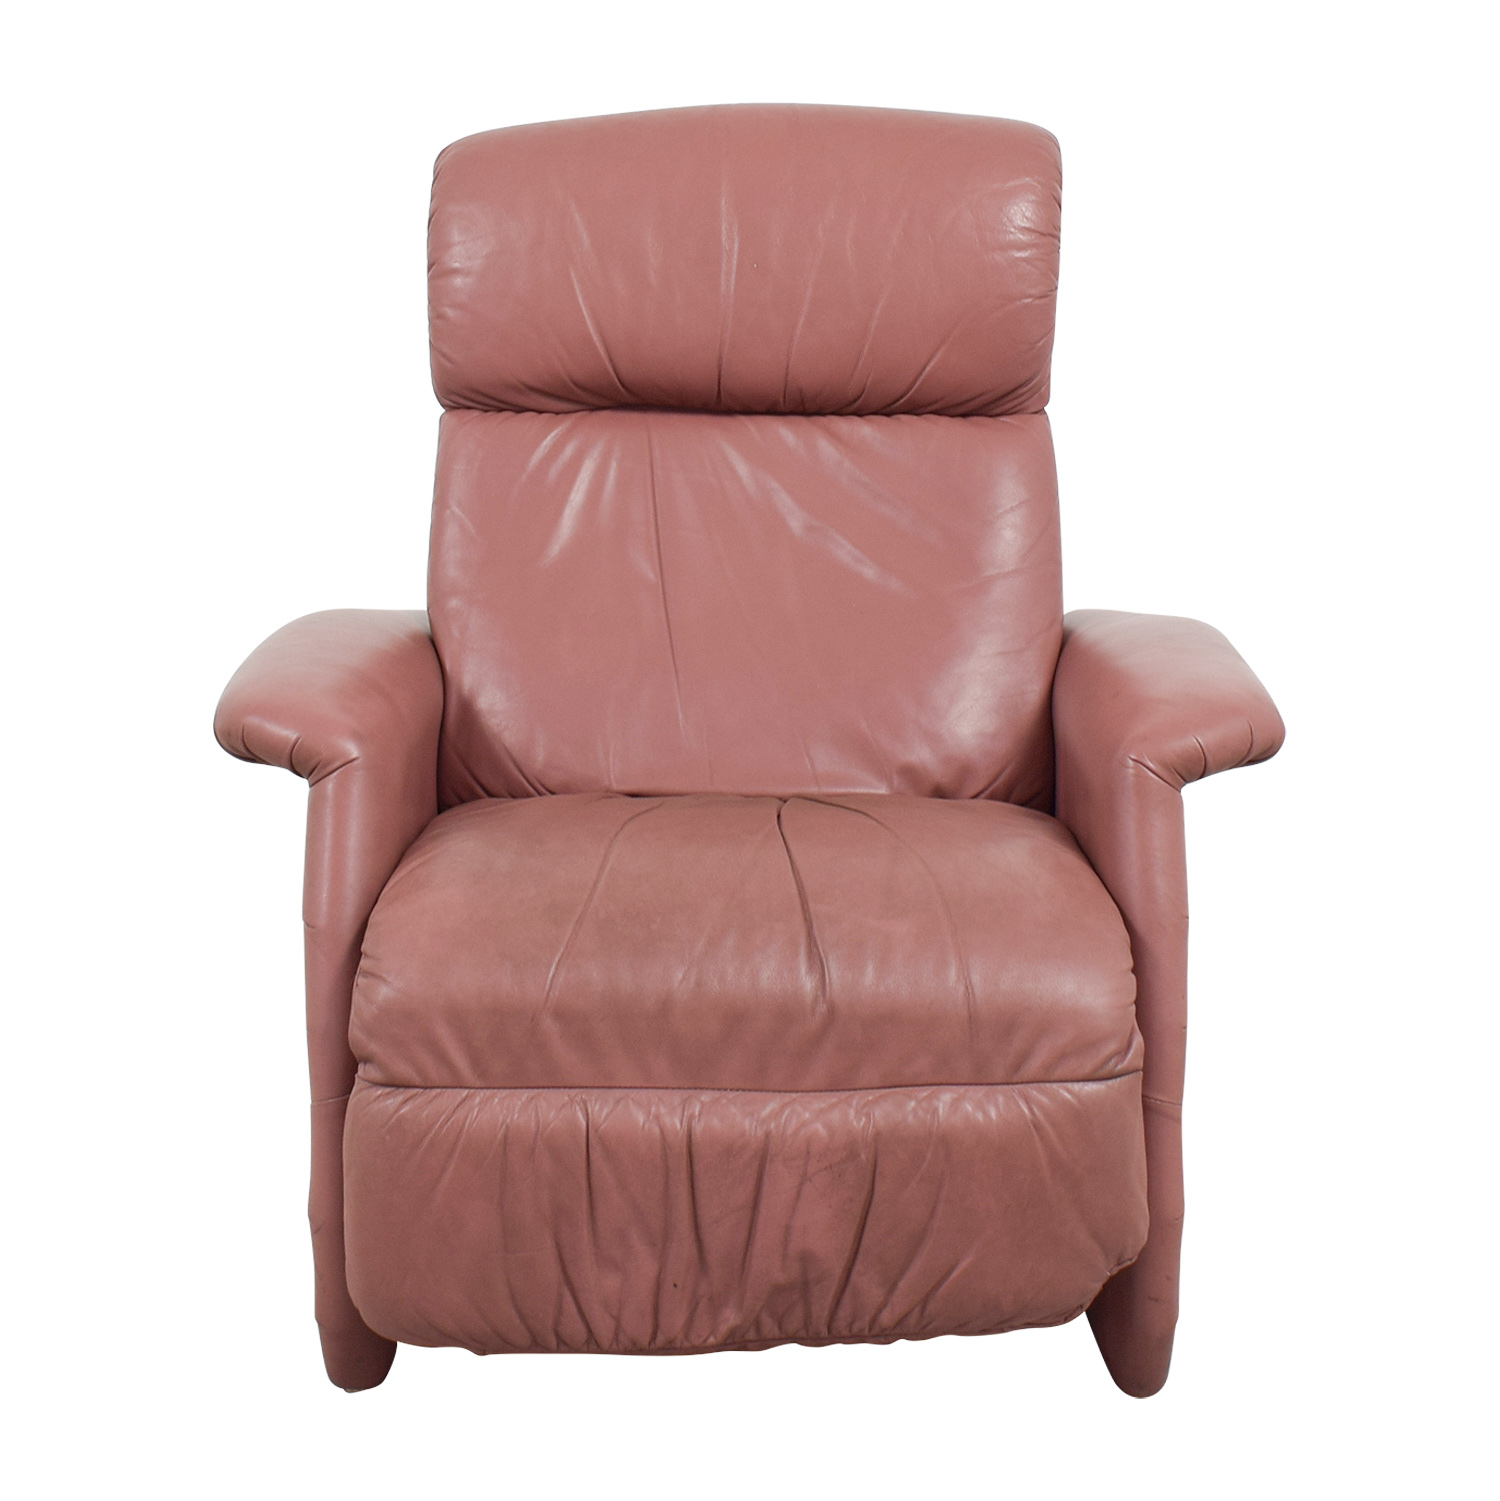 Leather Reclining Chairs 90 Off Salmon Leather Recliner Chairs